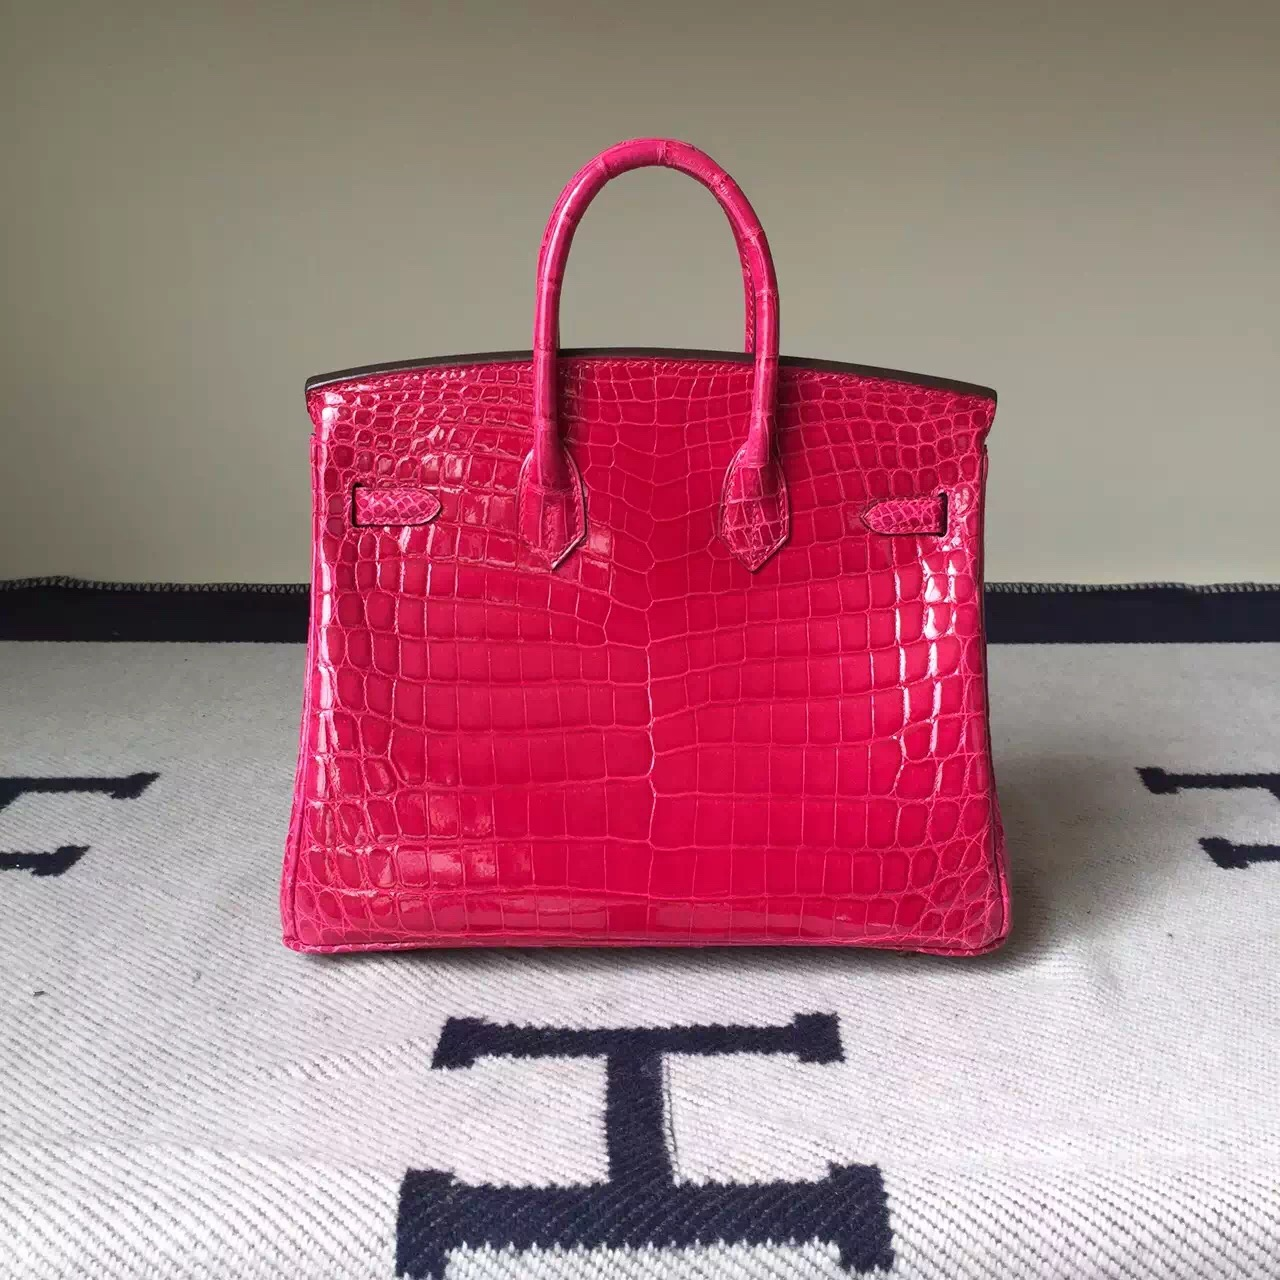 Sale Hermes Hot Pink Crocodile Shiny Leather Birkin Bag 25cm